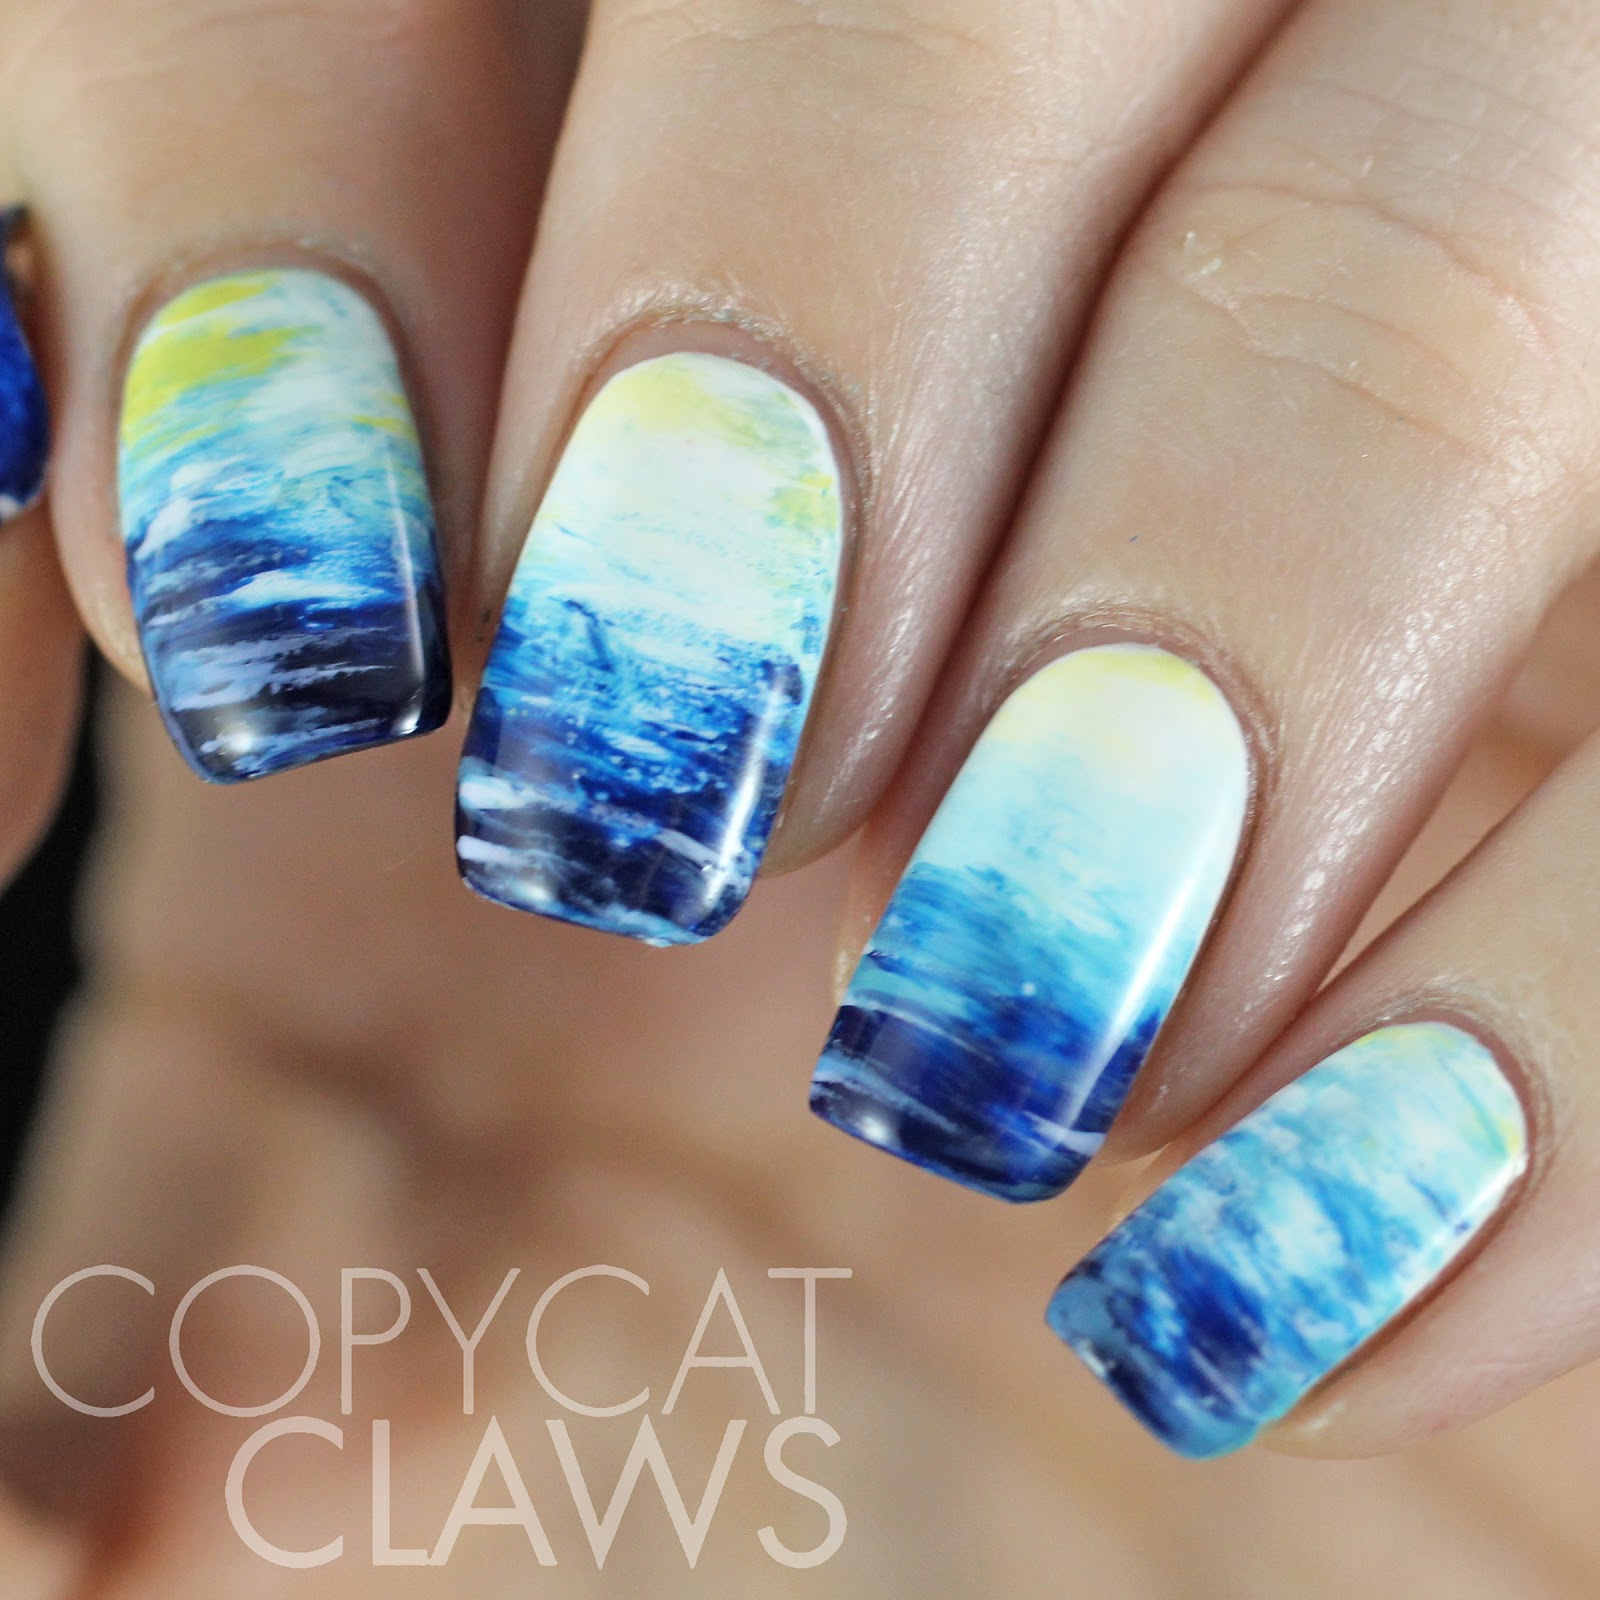 Copycat Claws Blue Color Block Nail Art: Copycat Claws: The Digit-al Dozen Does Nature: Day 3 Fan